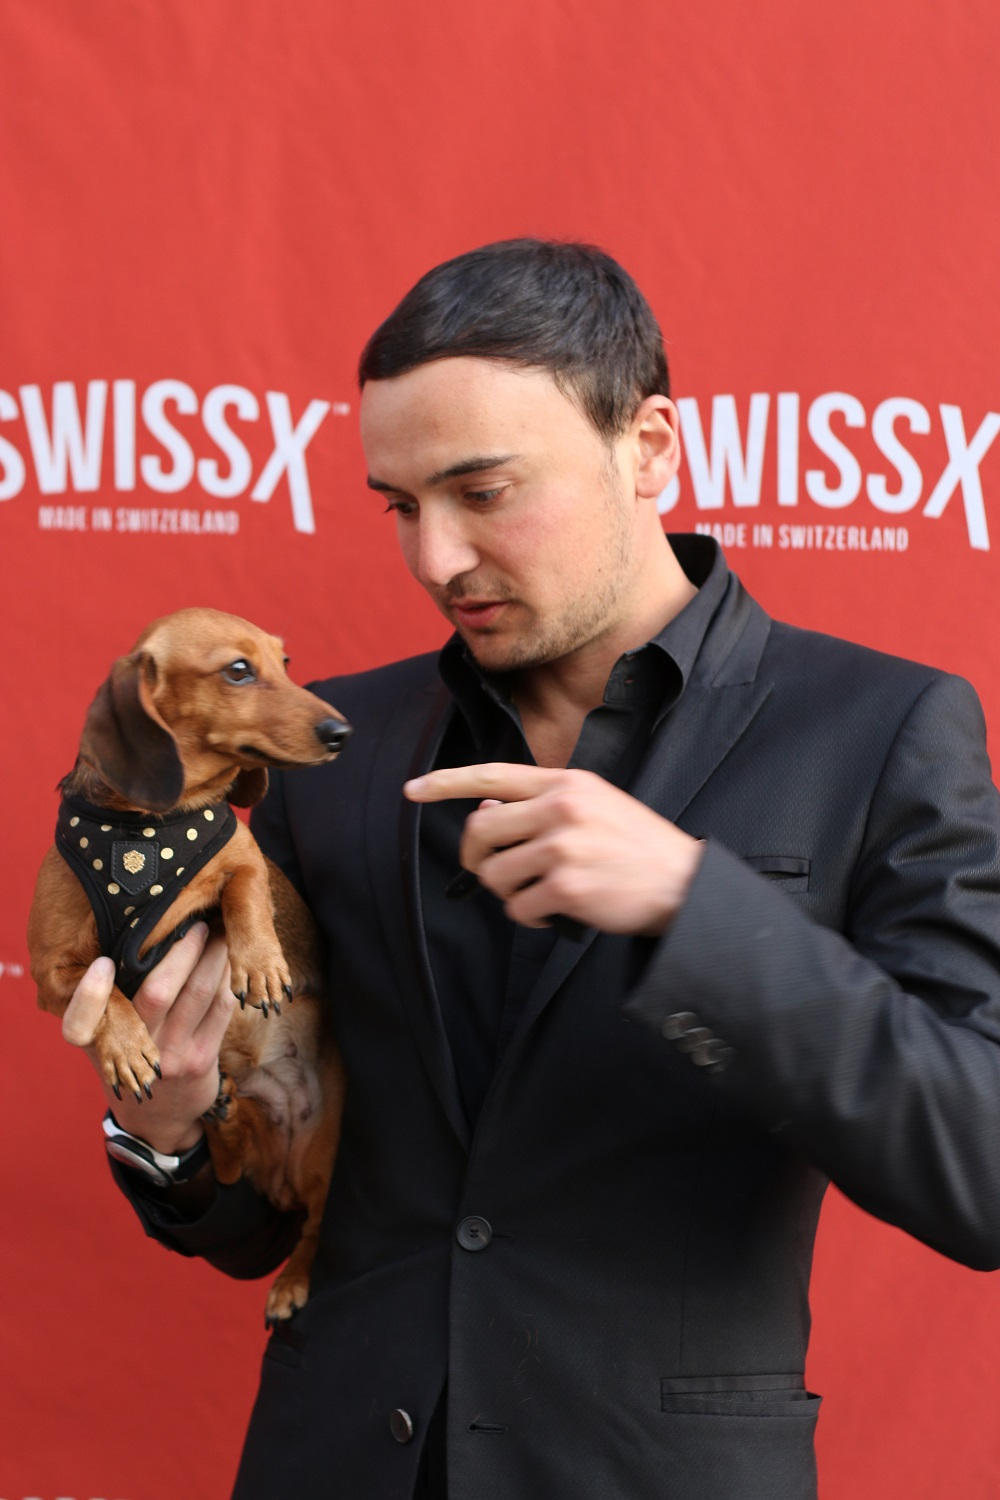 Lucy on the SwissX Red Carpet